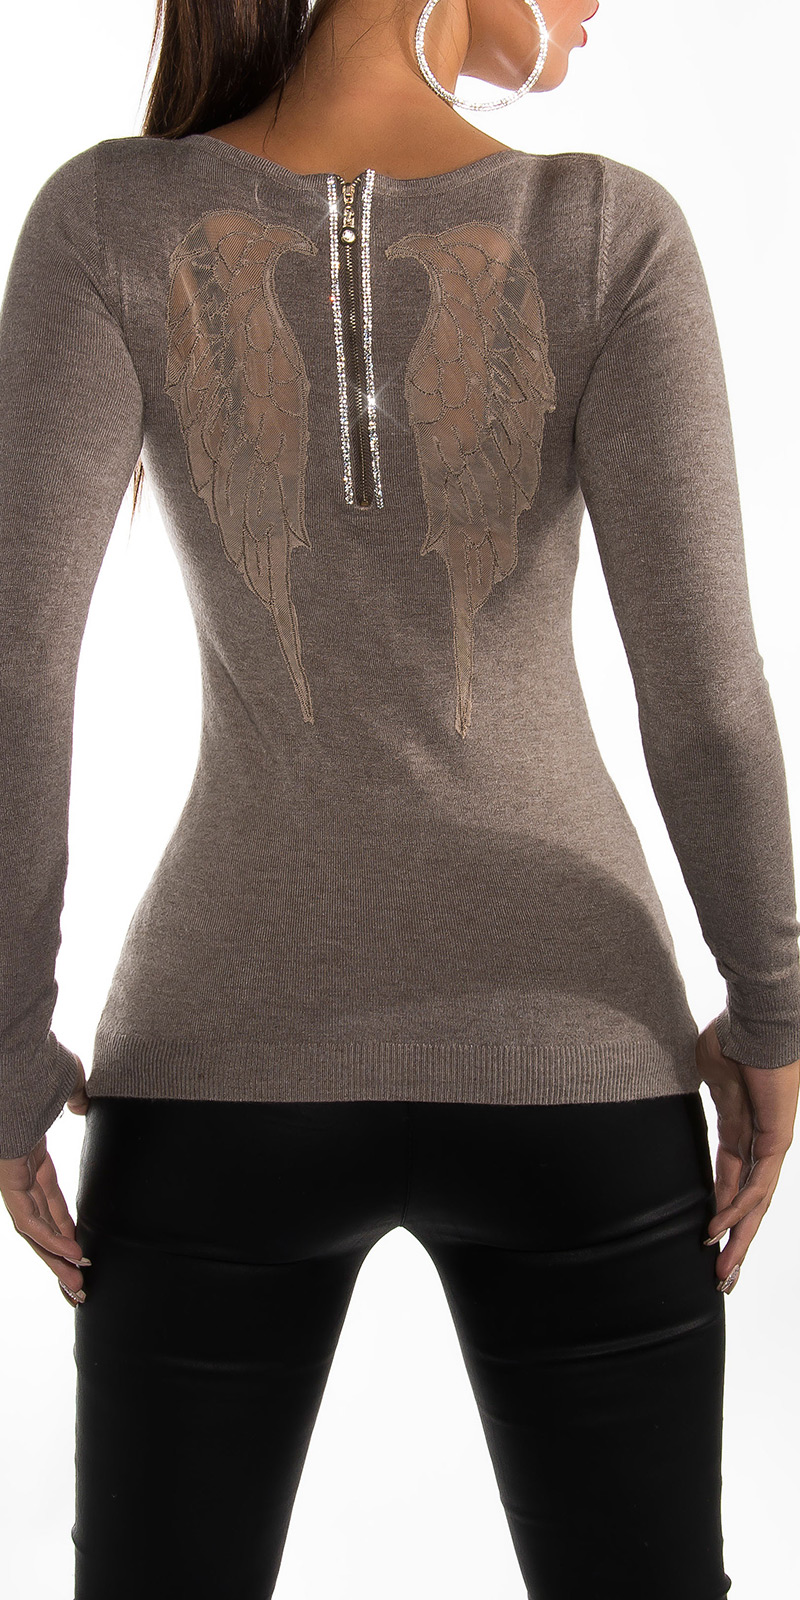 ookoucla_jumper_with_wings_and__rhinestones__color_cappuccino_size_onesize_0000isf8237_cappuccino_21